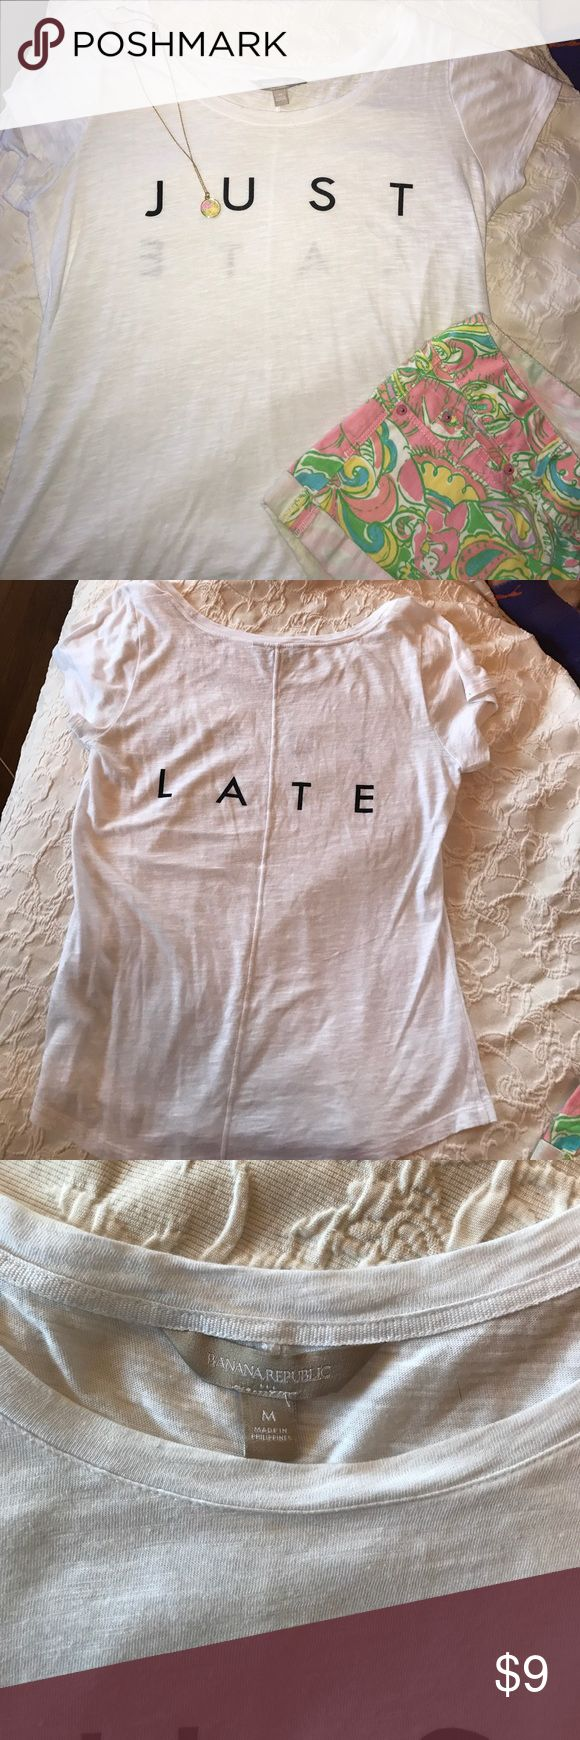 """""""JUST LATE"""" Banana Republic tshirt Casual Banana Republic cotton tshirt in great condition! Only worn once. Shirt only Banana Republic Tops Tees - Short Sleeve"""